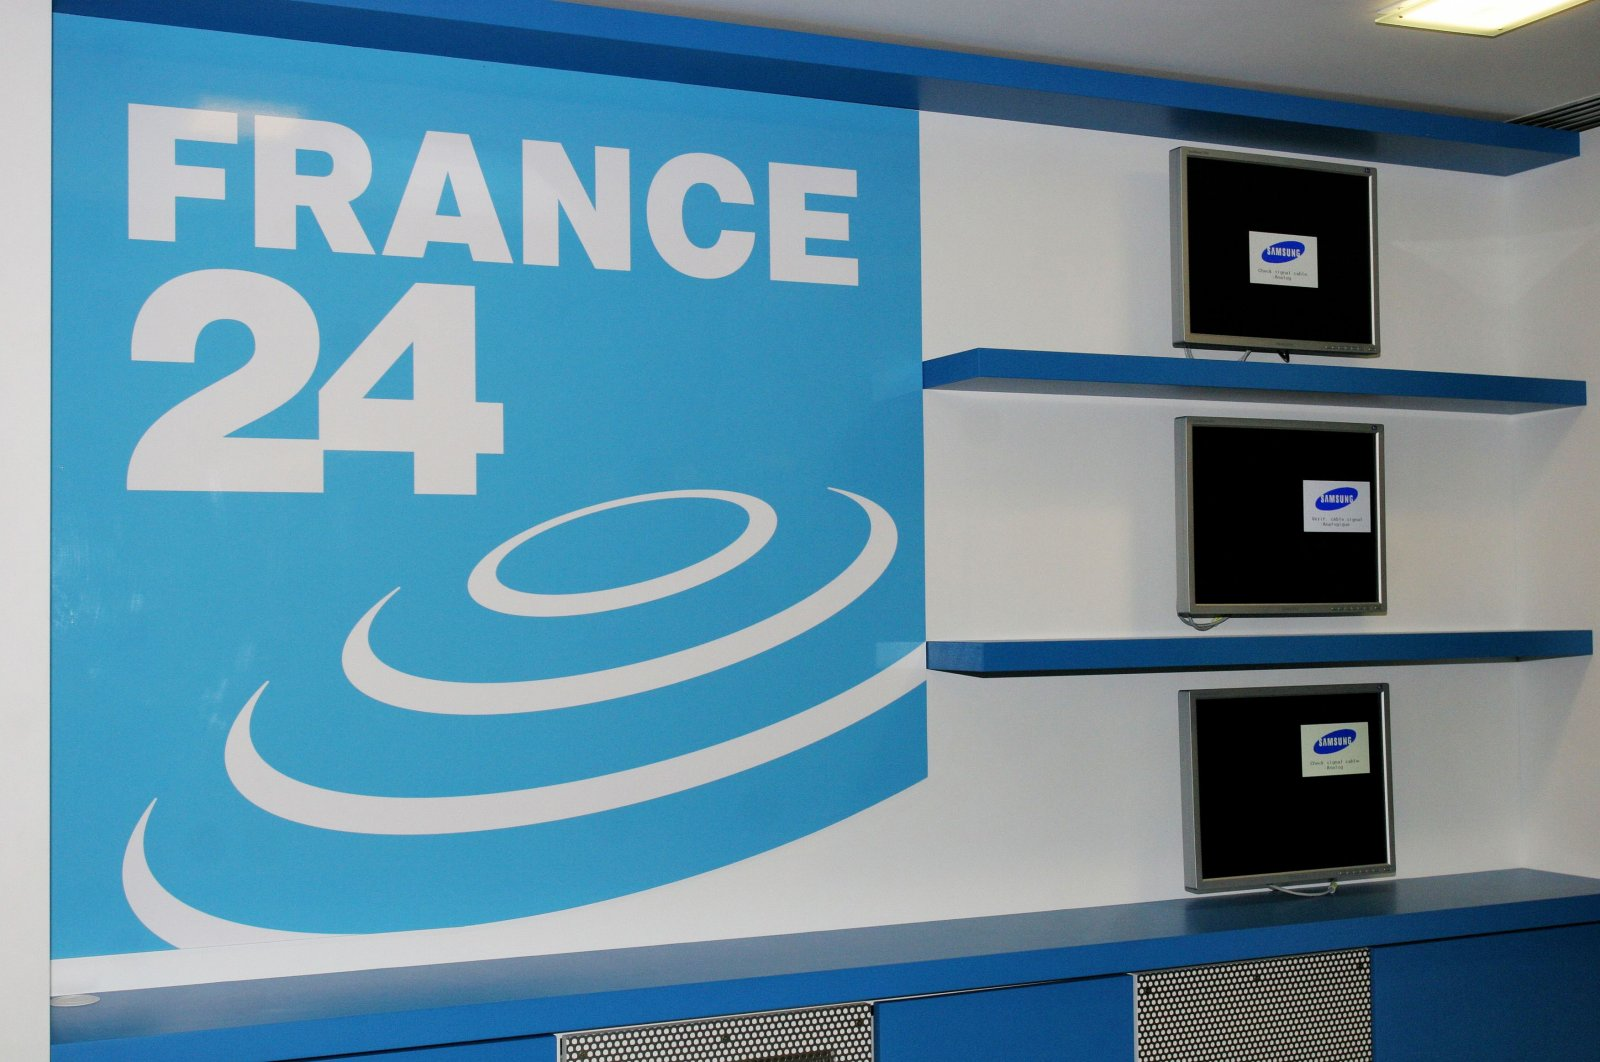 Studios of French 24-hour international news TV channel, France 24 in Issy les Moulineaux near Paris, France, on Dec. 6, 2006. (Reuters File Photo)